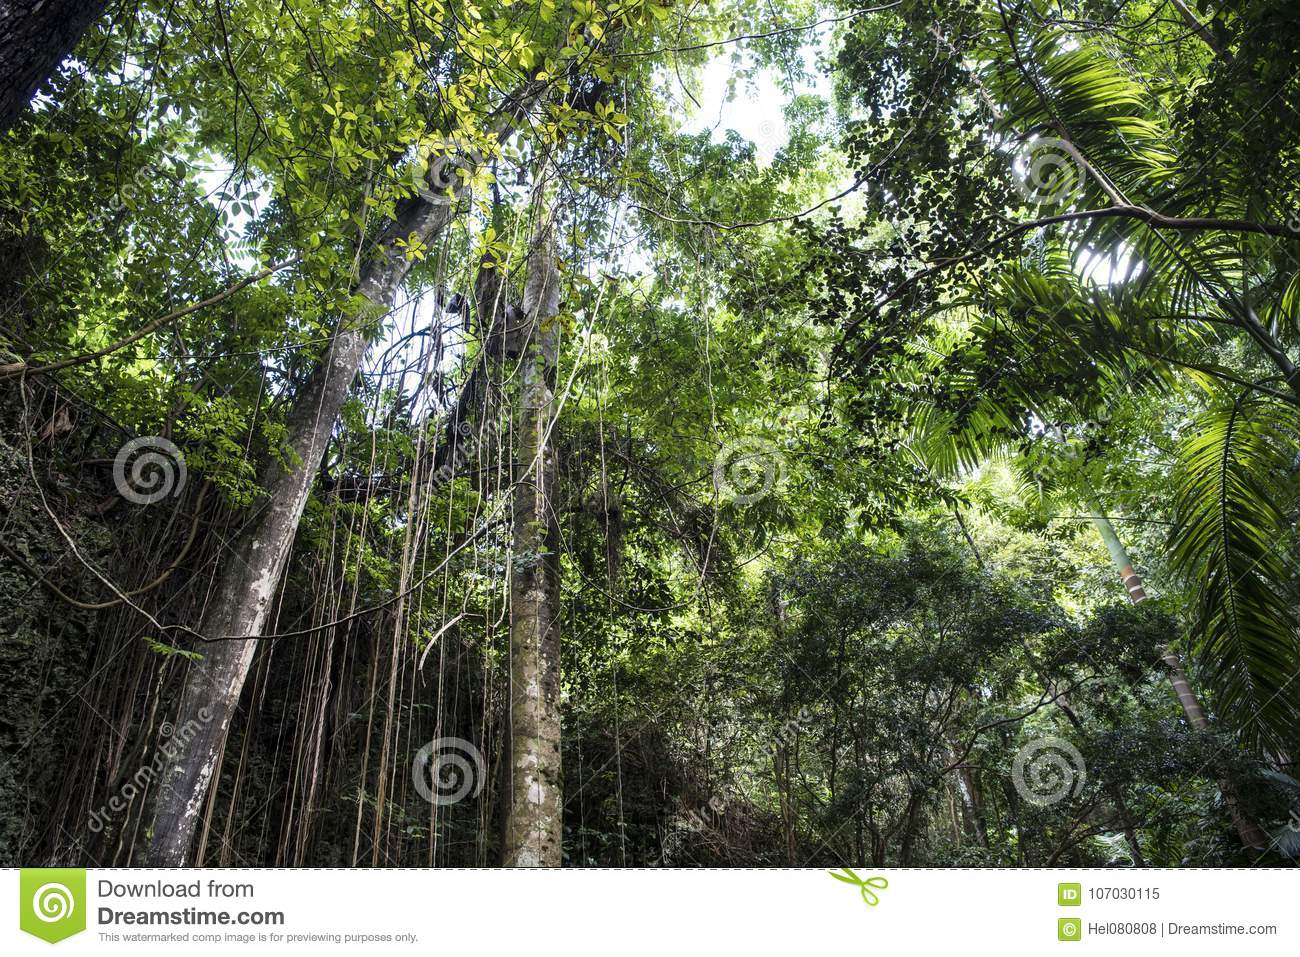 Bosque de la selva en Welchman Hall Gully, Barbados